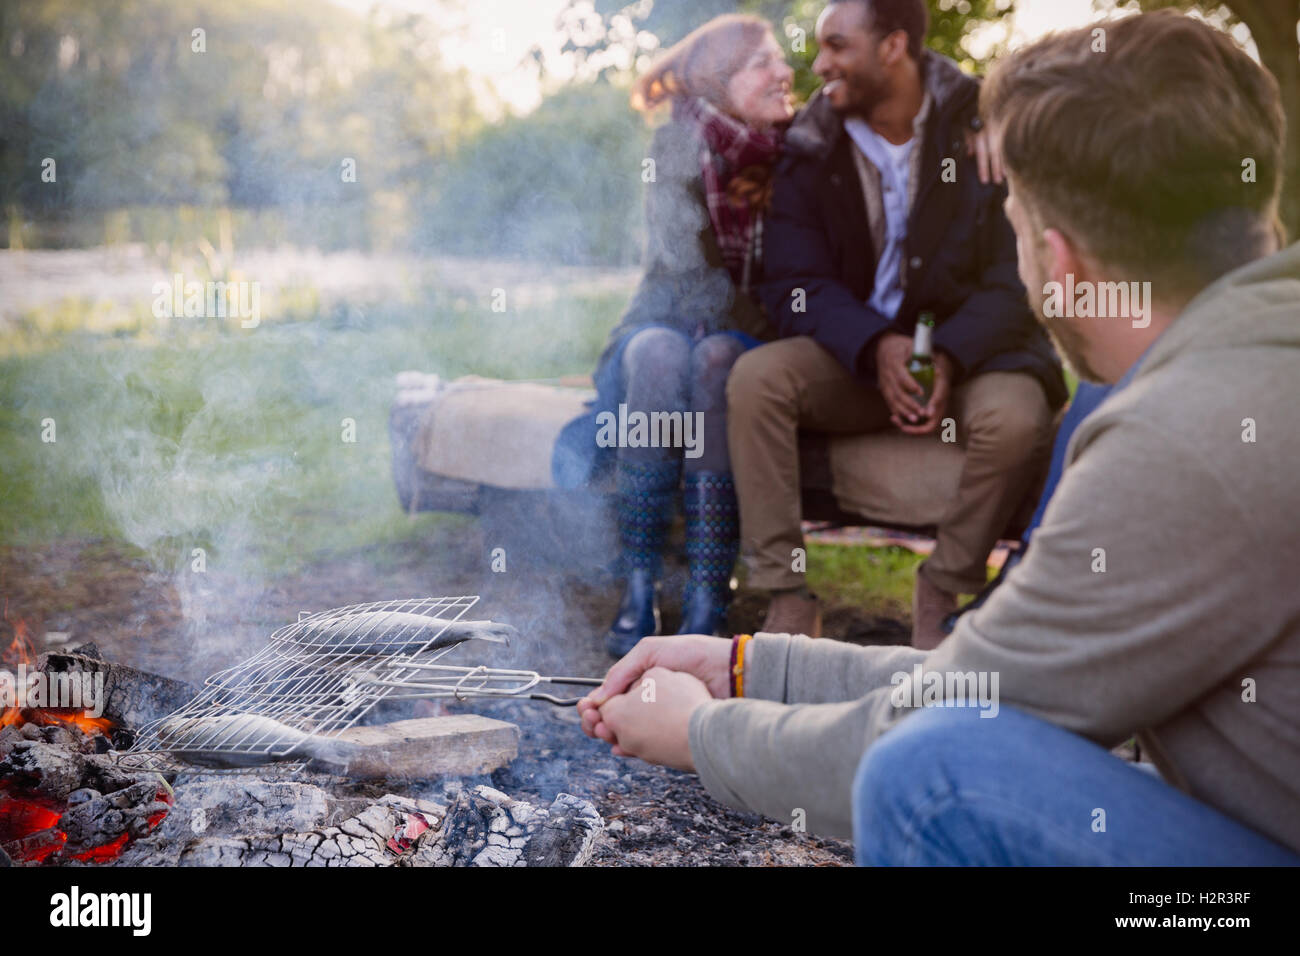 Friends Cooking Fish In Grill Basket Over Campfire